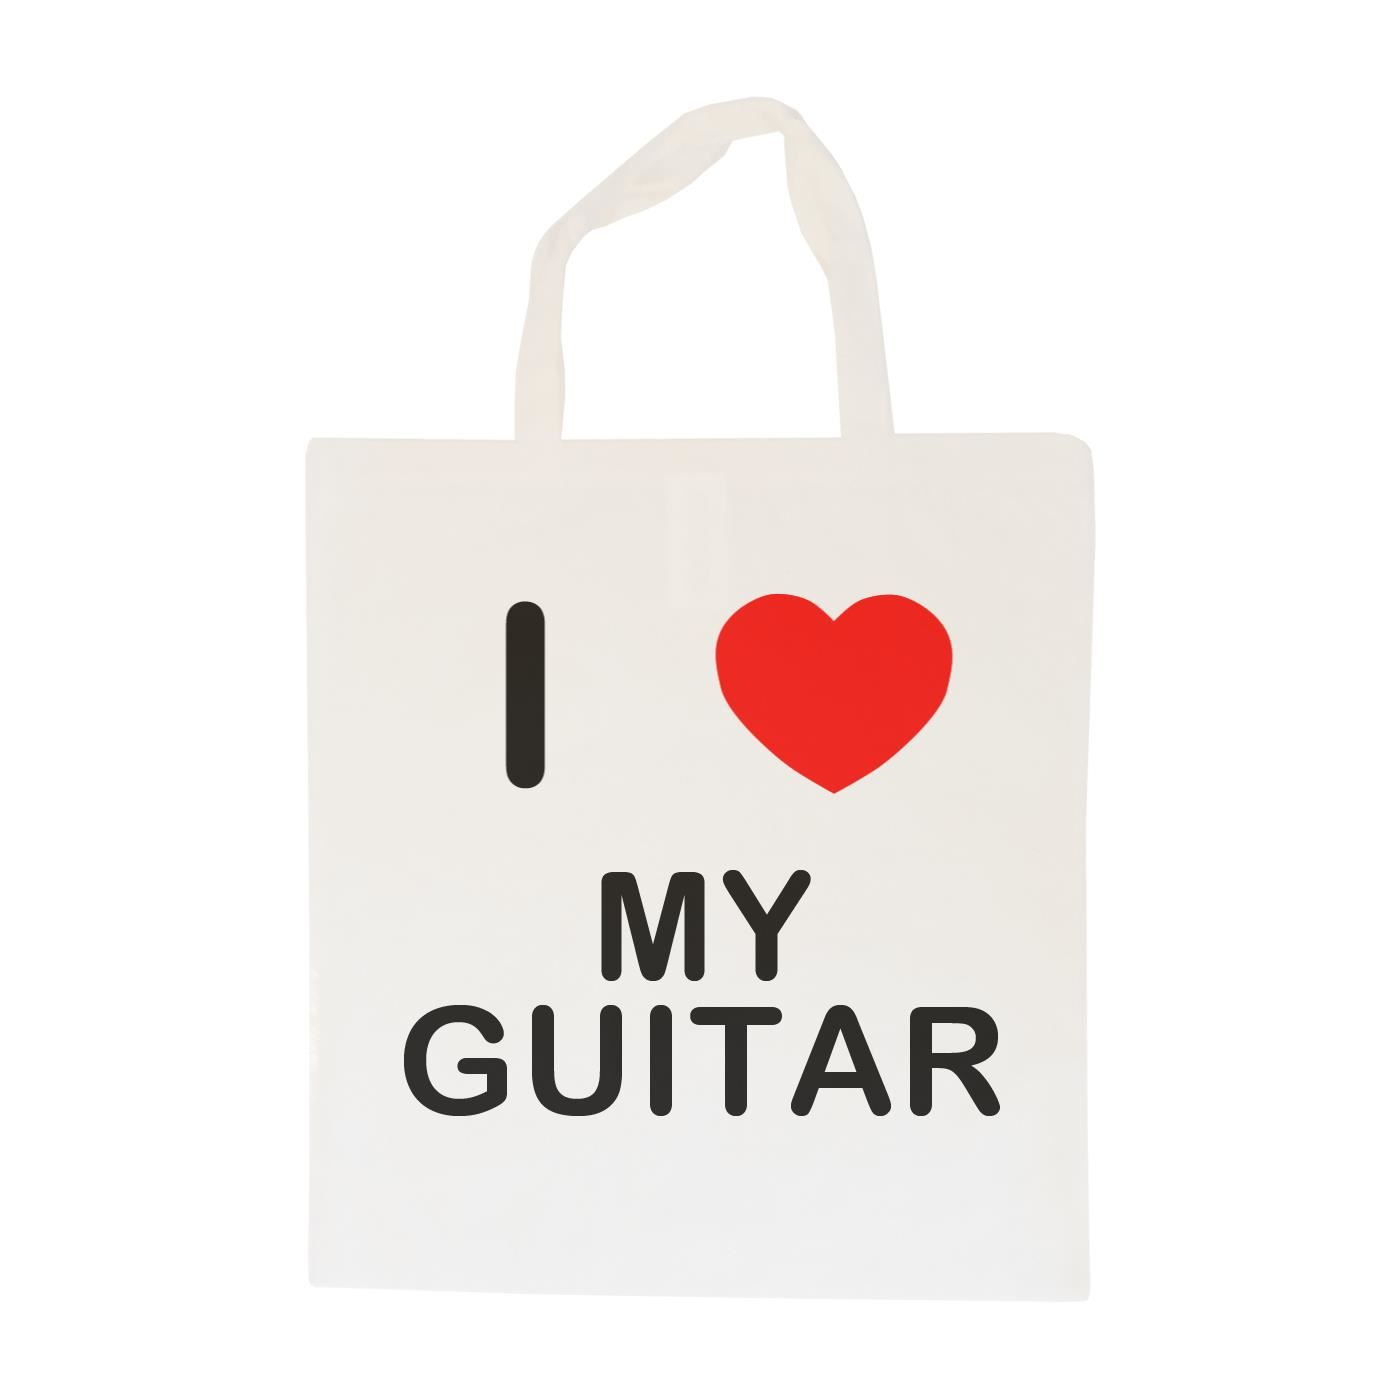 I Love My Guitar - Cotton Bag | Size choice Tote, Shopper or Sling